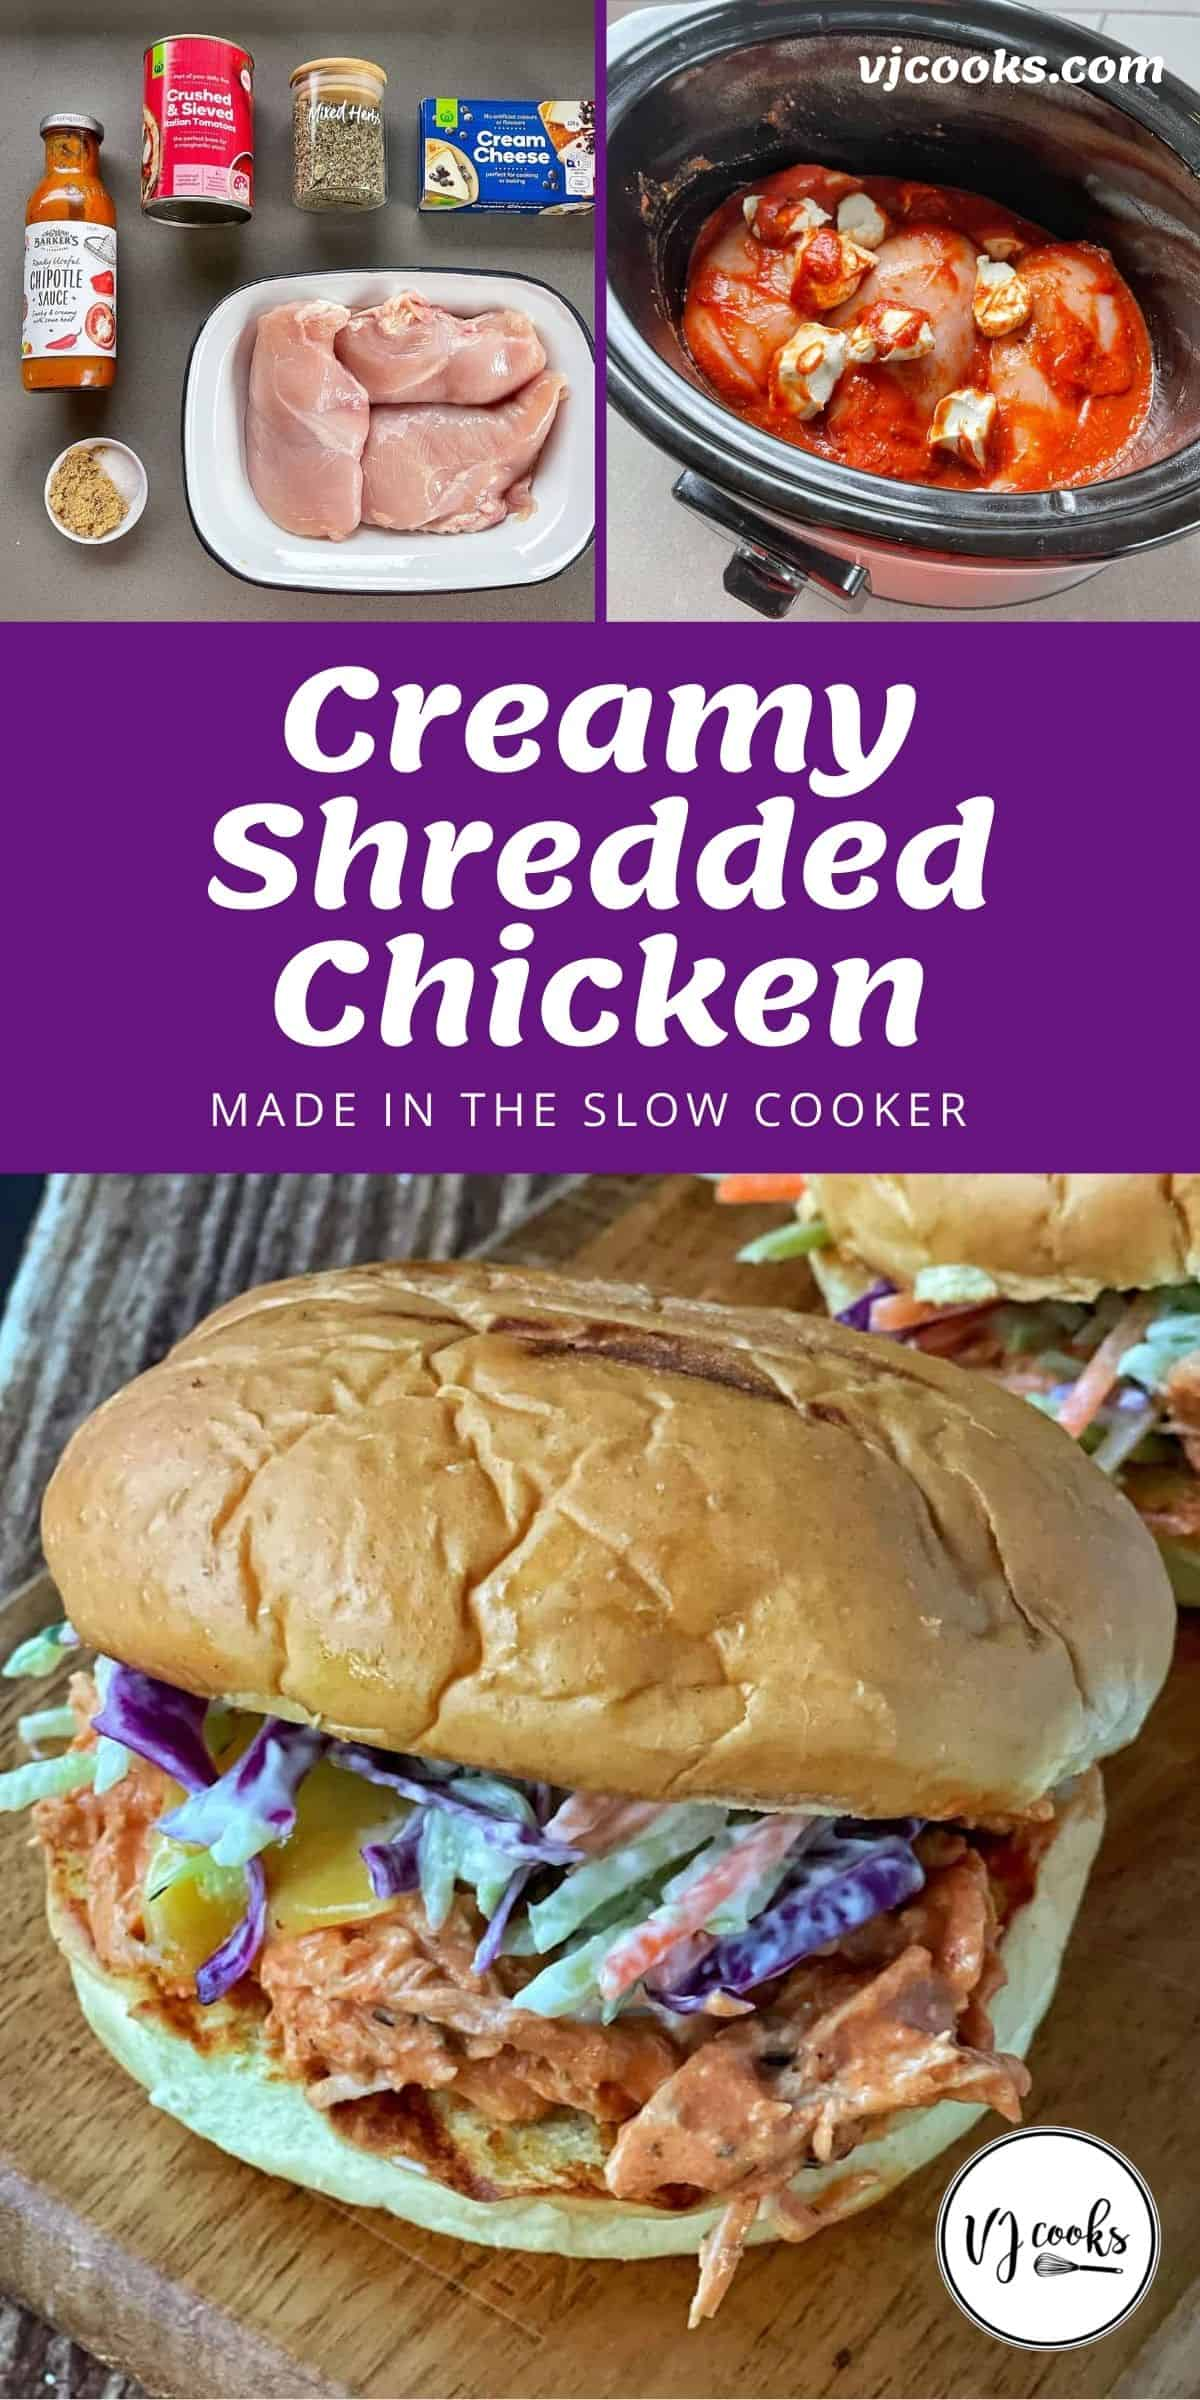 The process of making and serving creamy shredded chicken